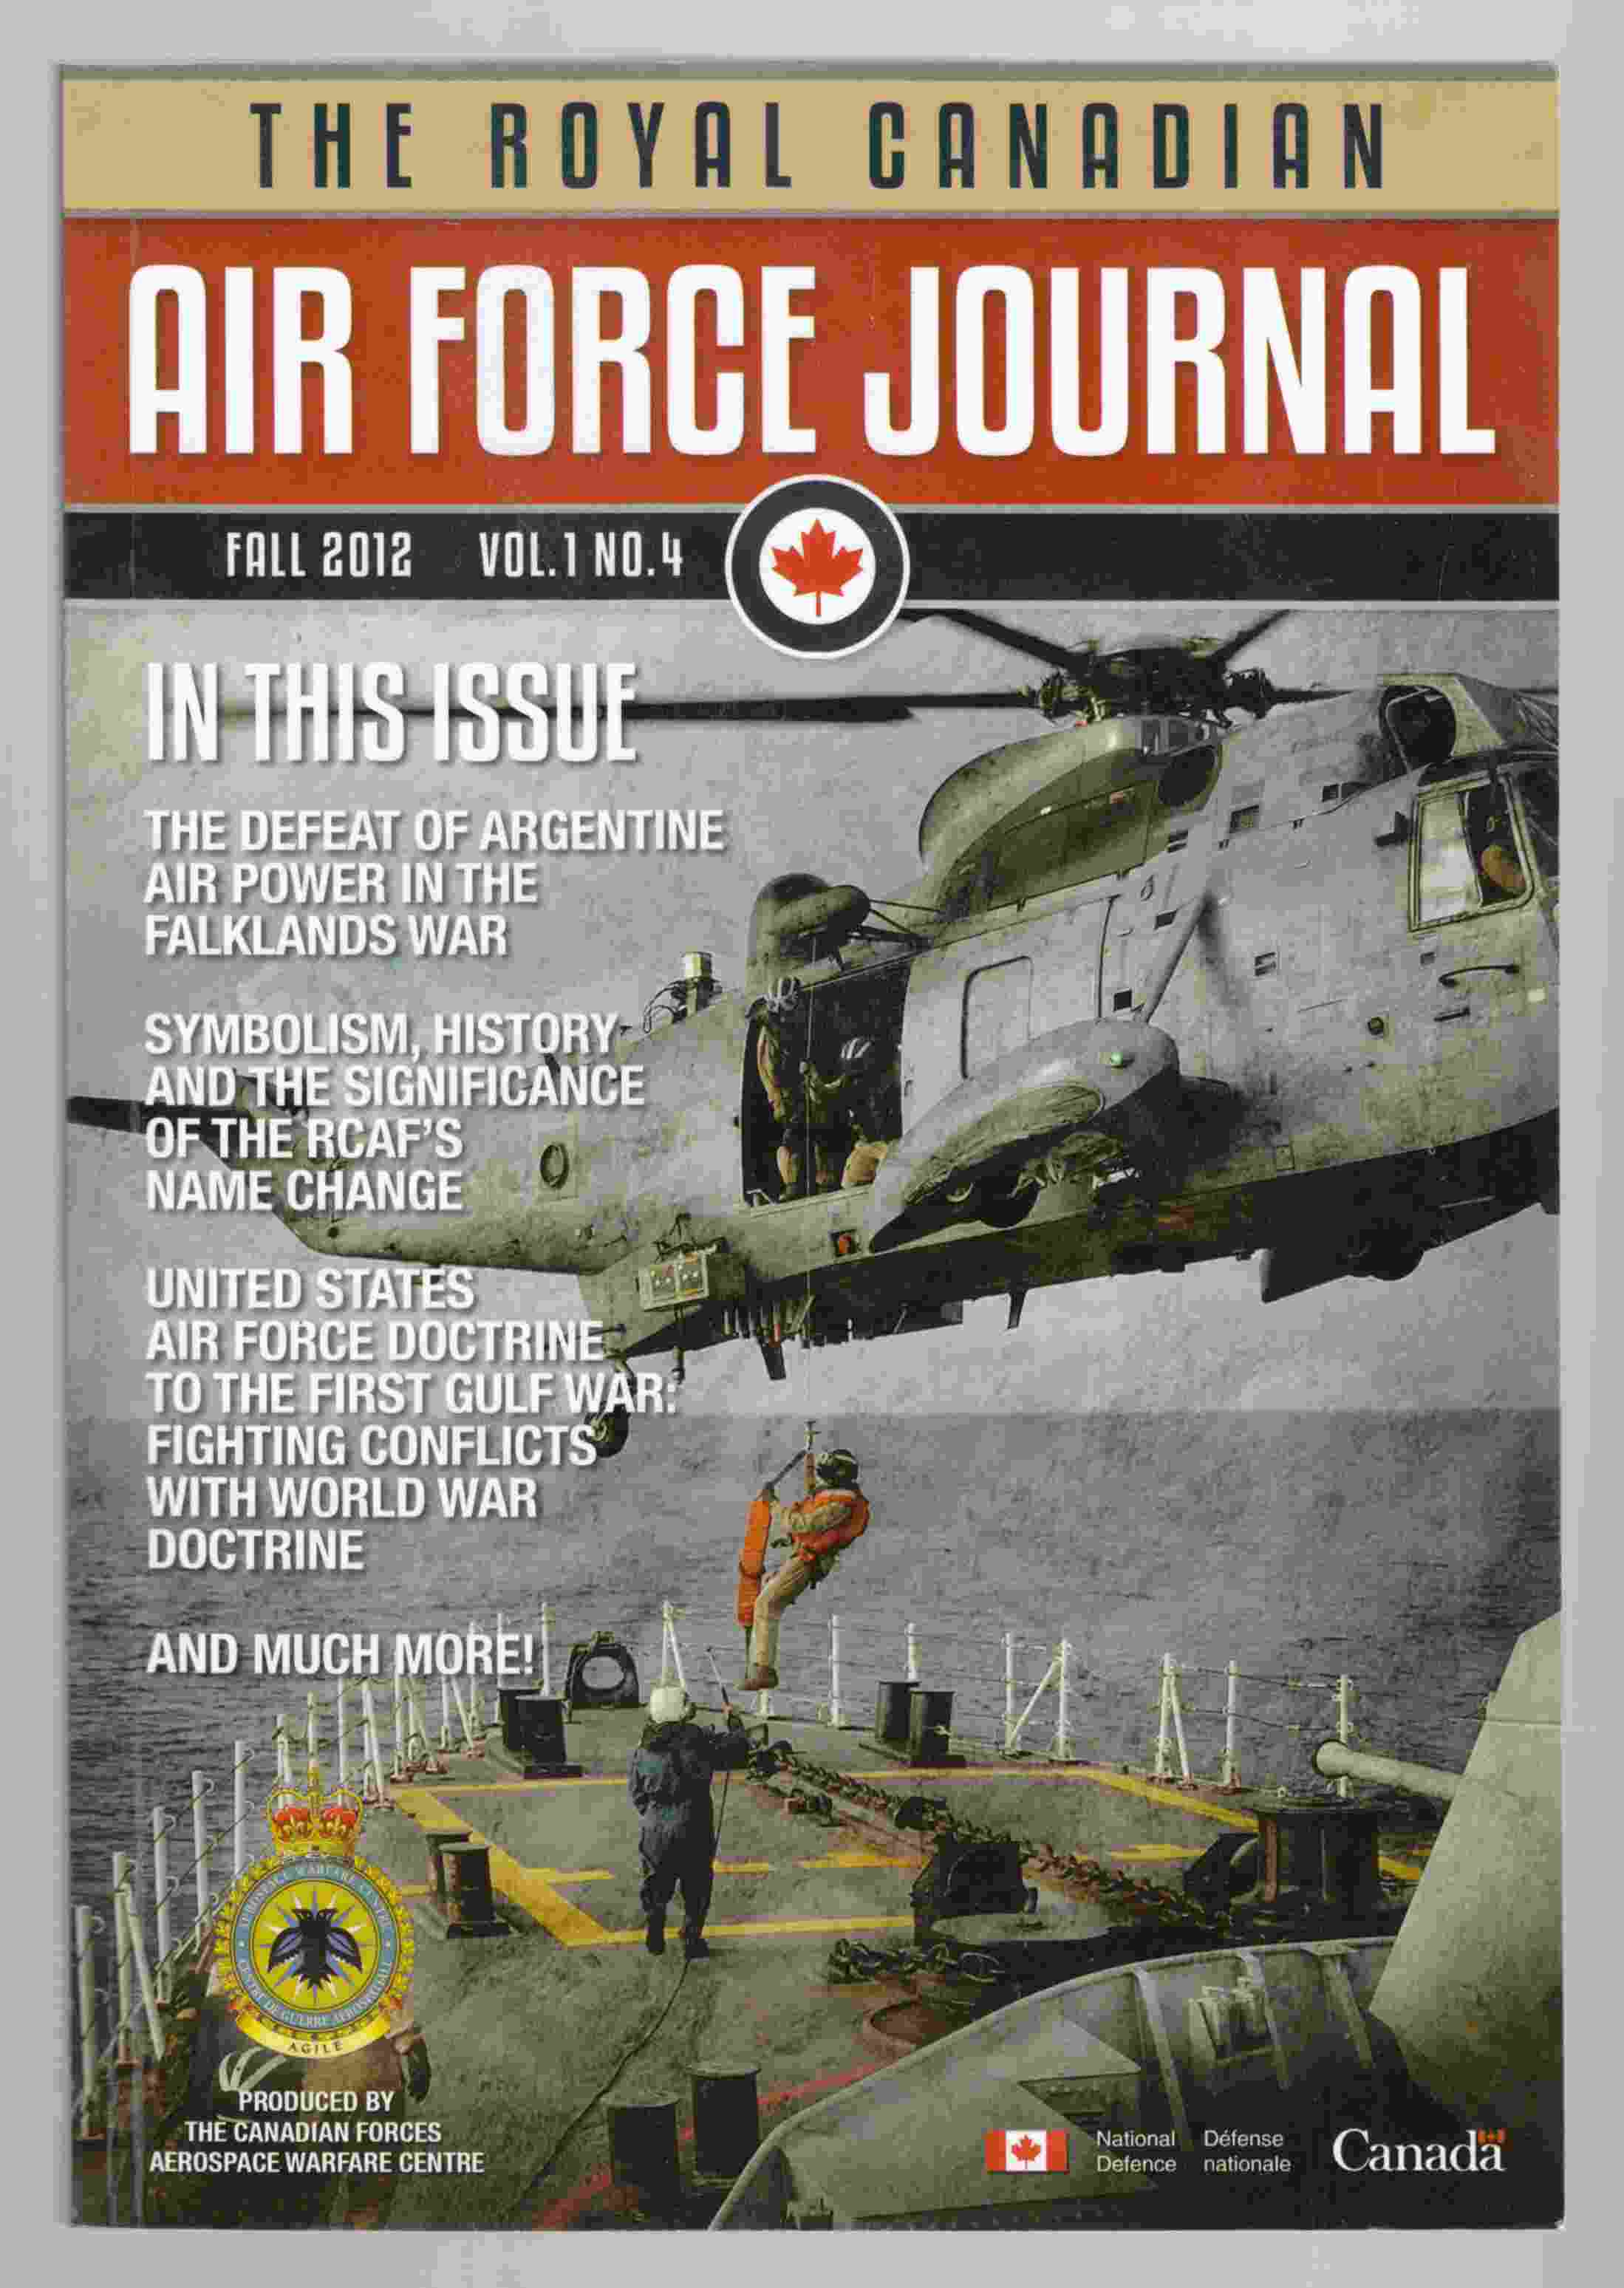 Image for The Royal Canadian Air Force Journal Fall 2012 Vol 1. No. 4 / La Revue De L'Aviation Royale Canadienne Automne 2012 Vol 1. No. 4